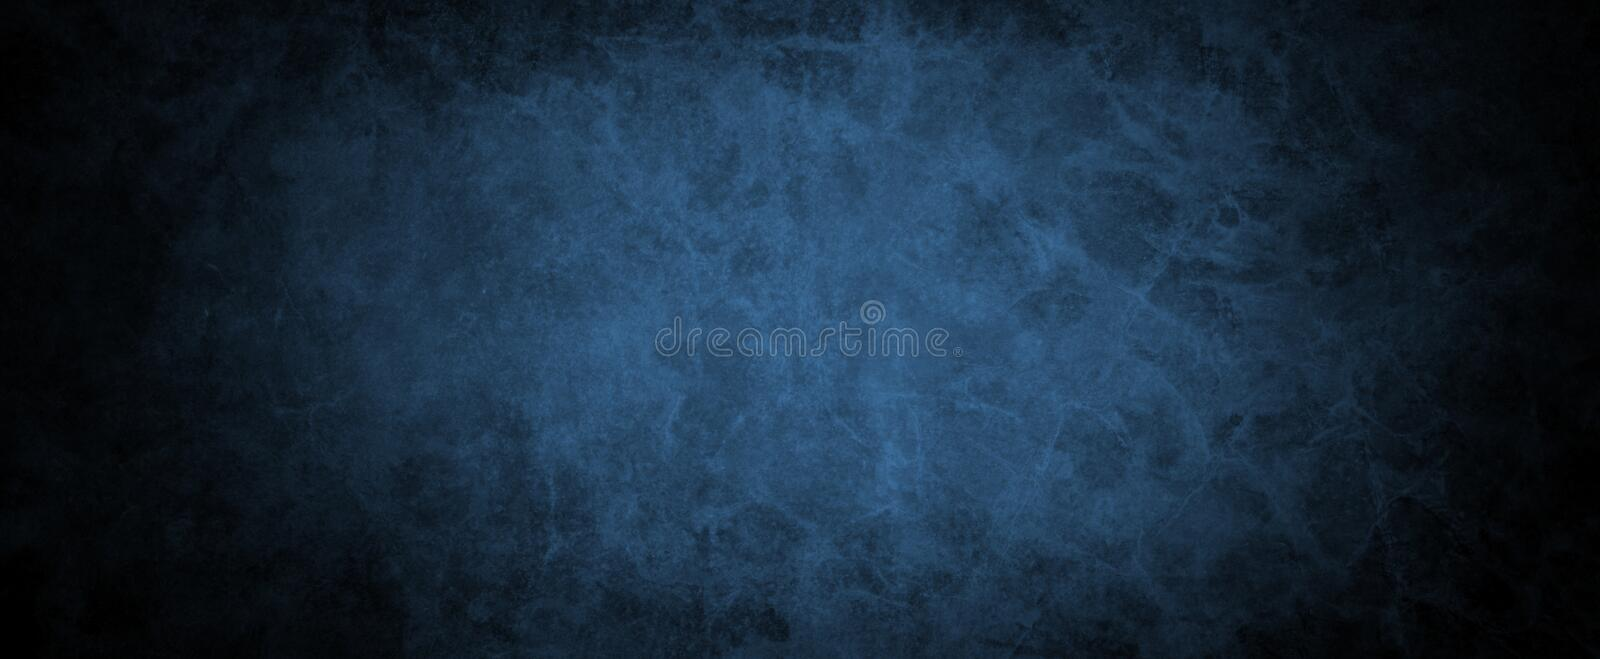 Black and blue vintage background with distressed grunge texture and soft color design with dark black border stock photos